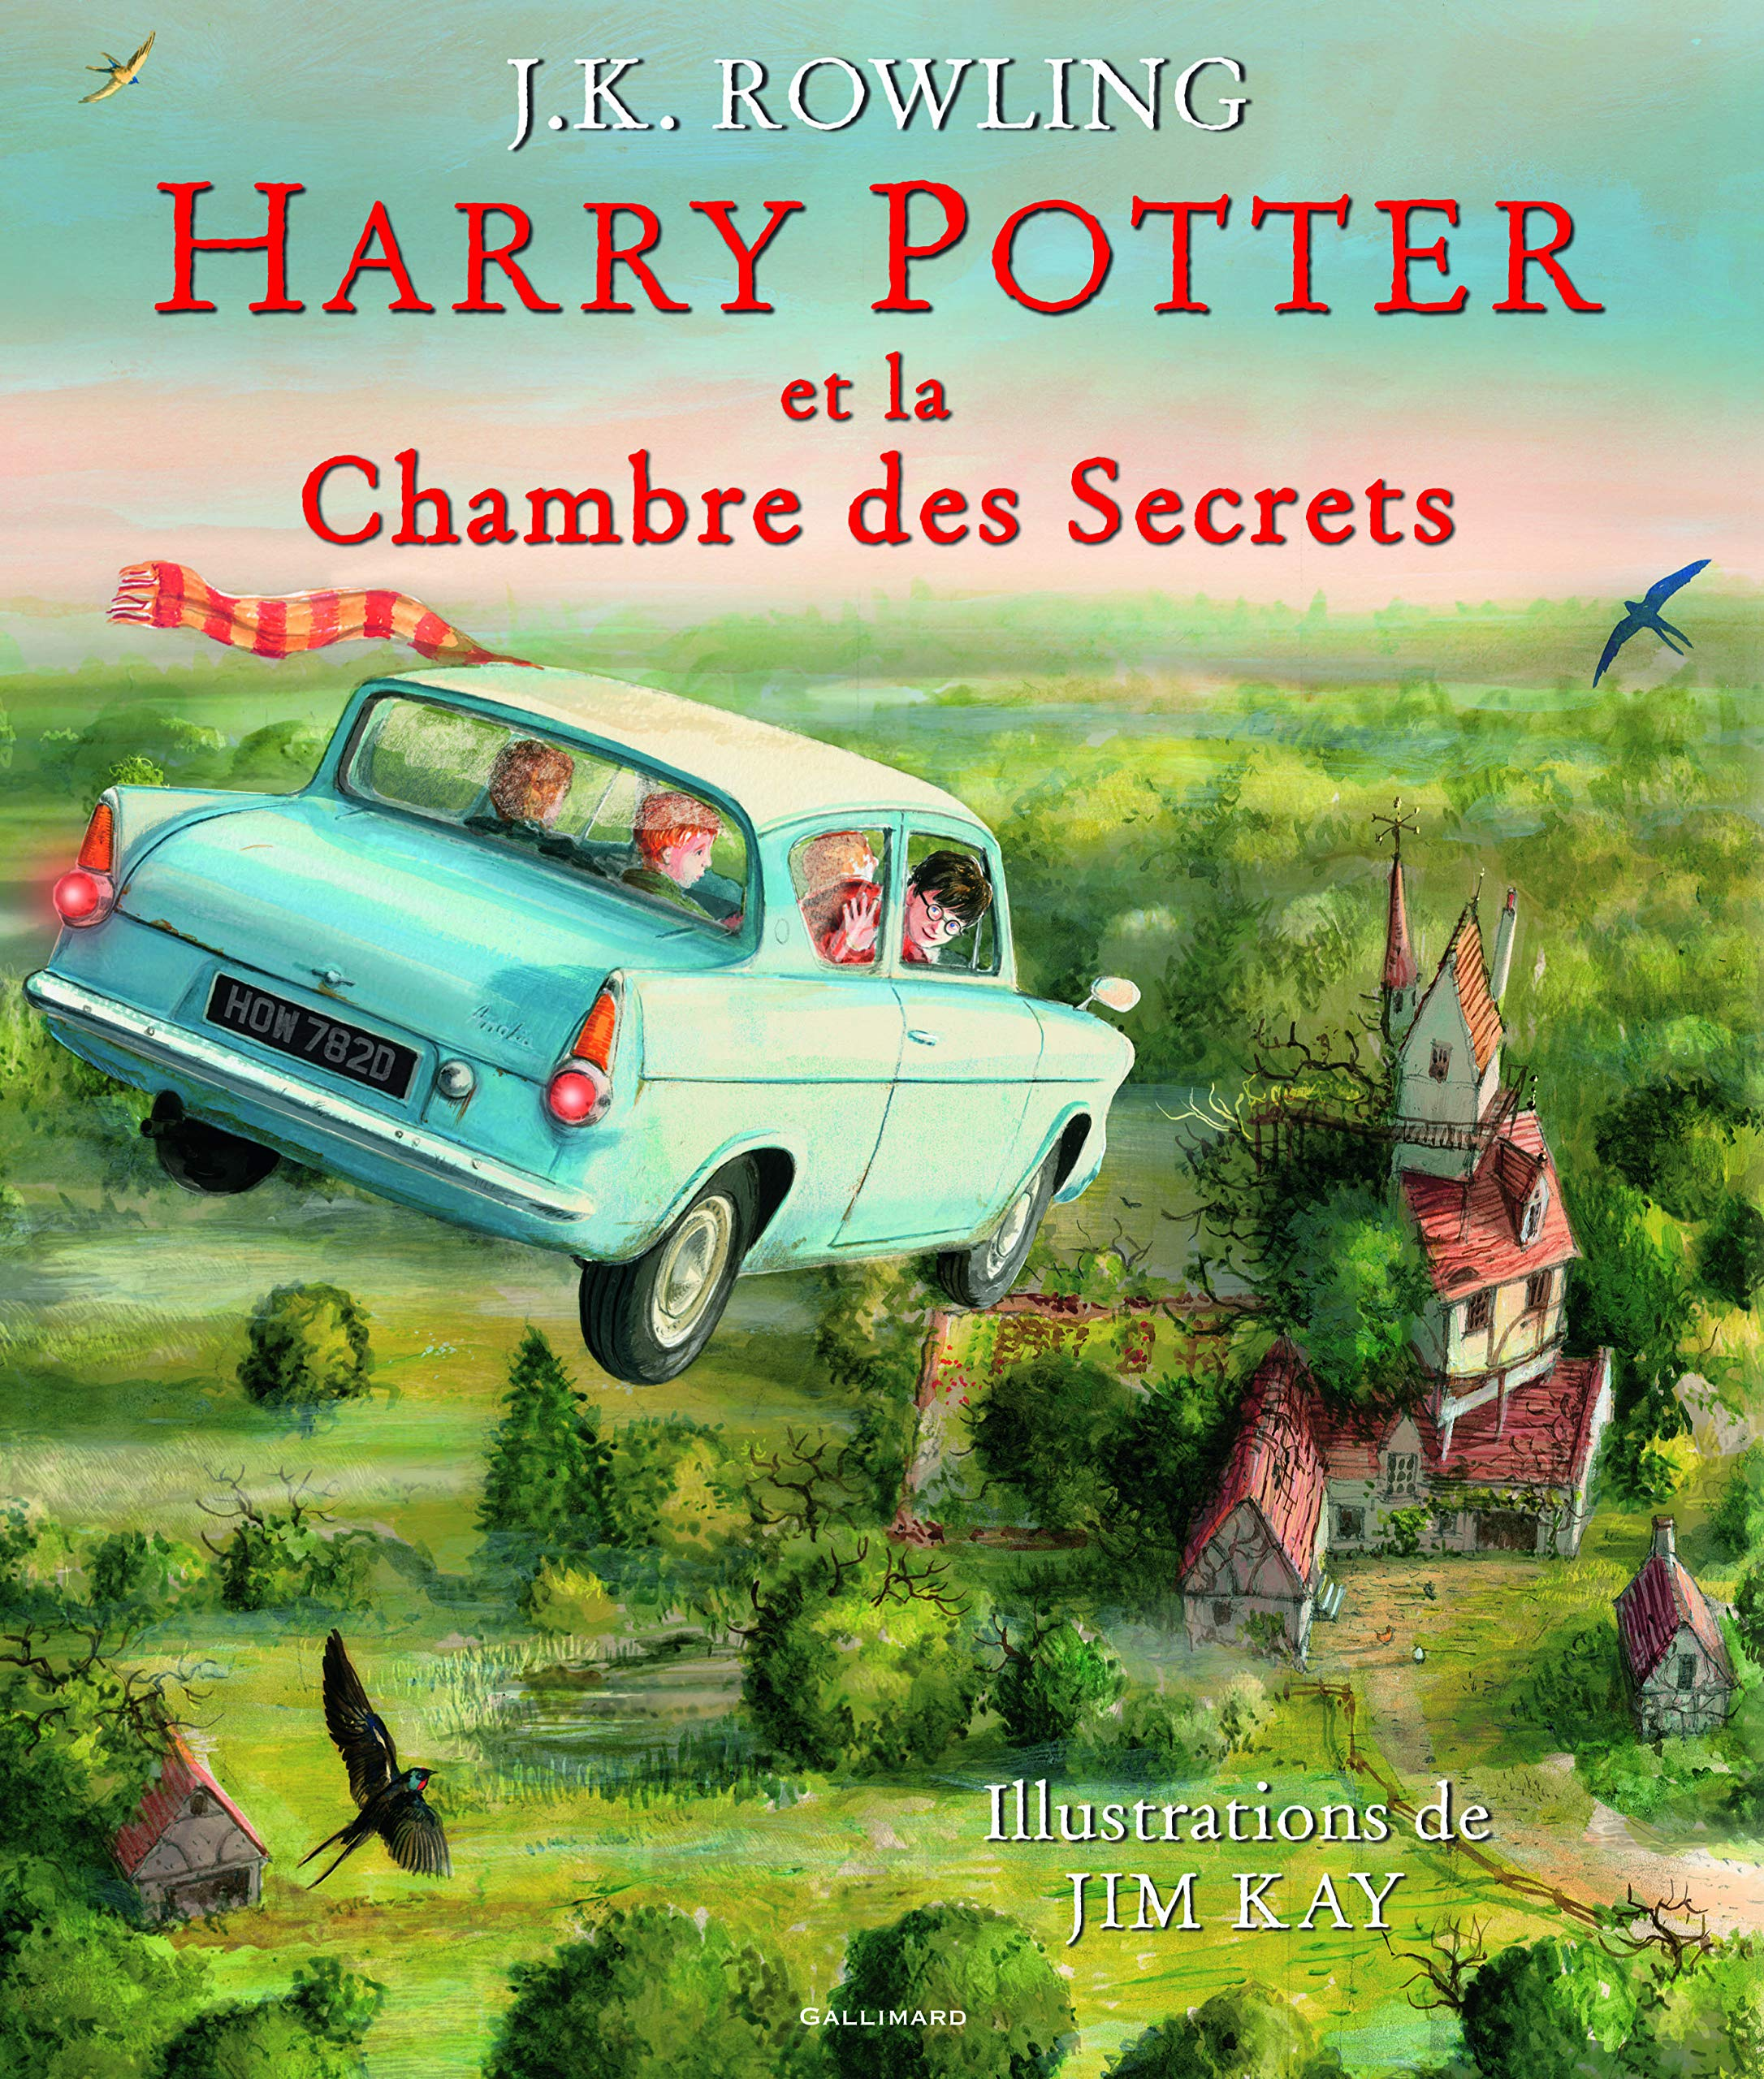 Harry Potter Tome Ii Edition Illustree Harry Potter Et